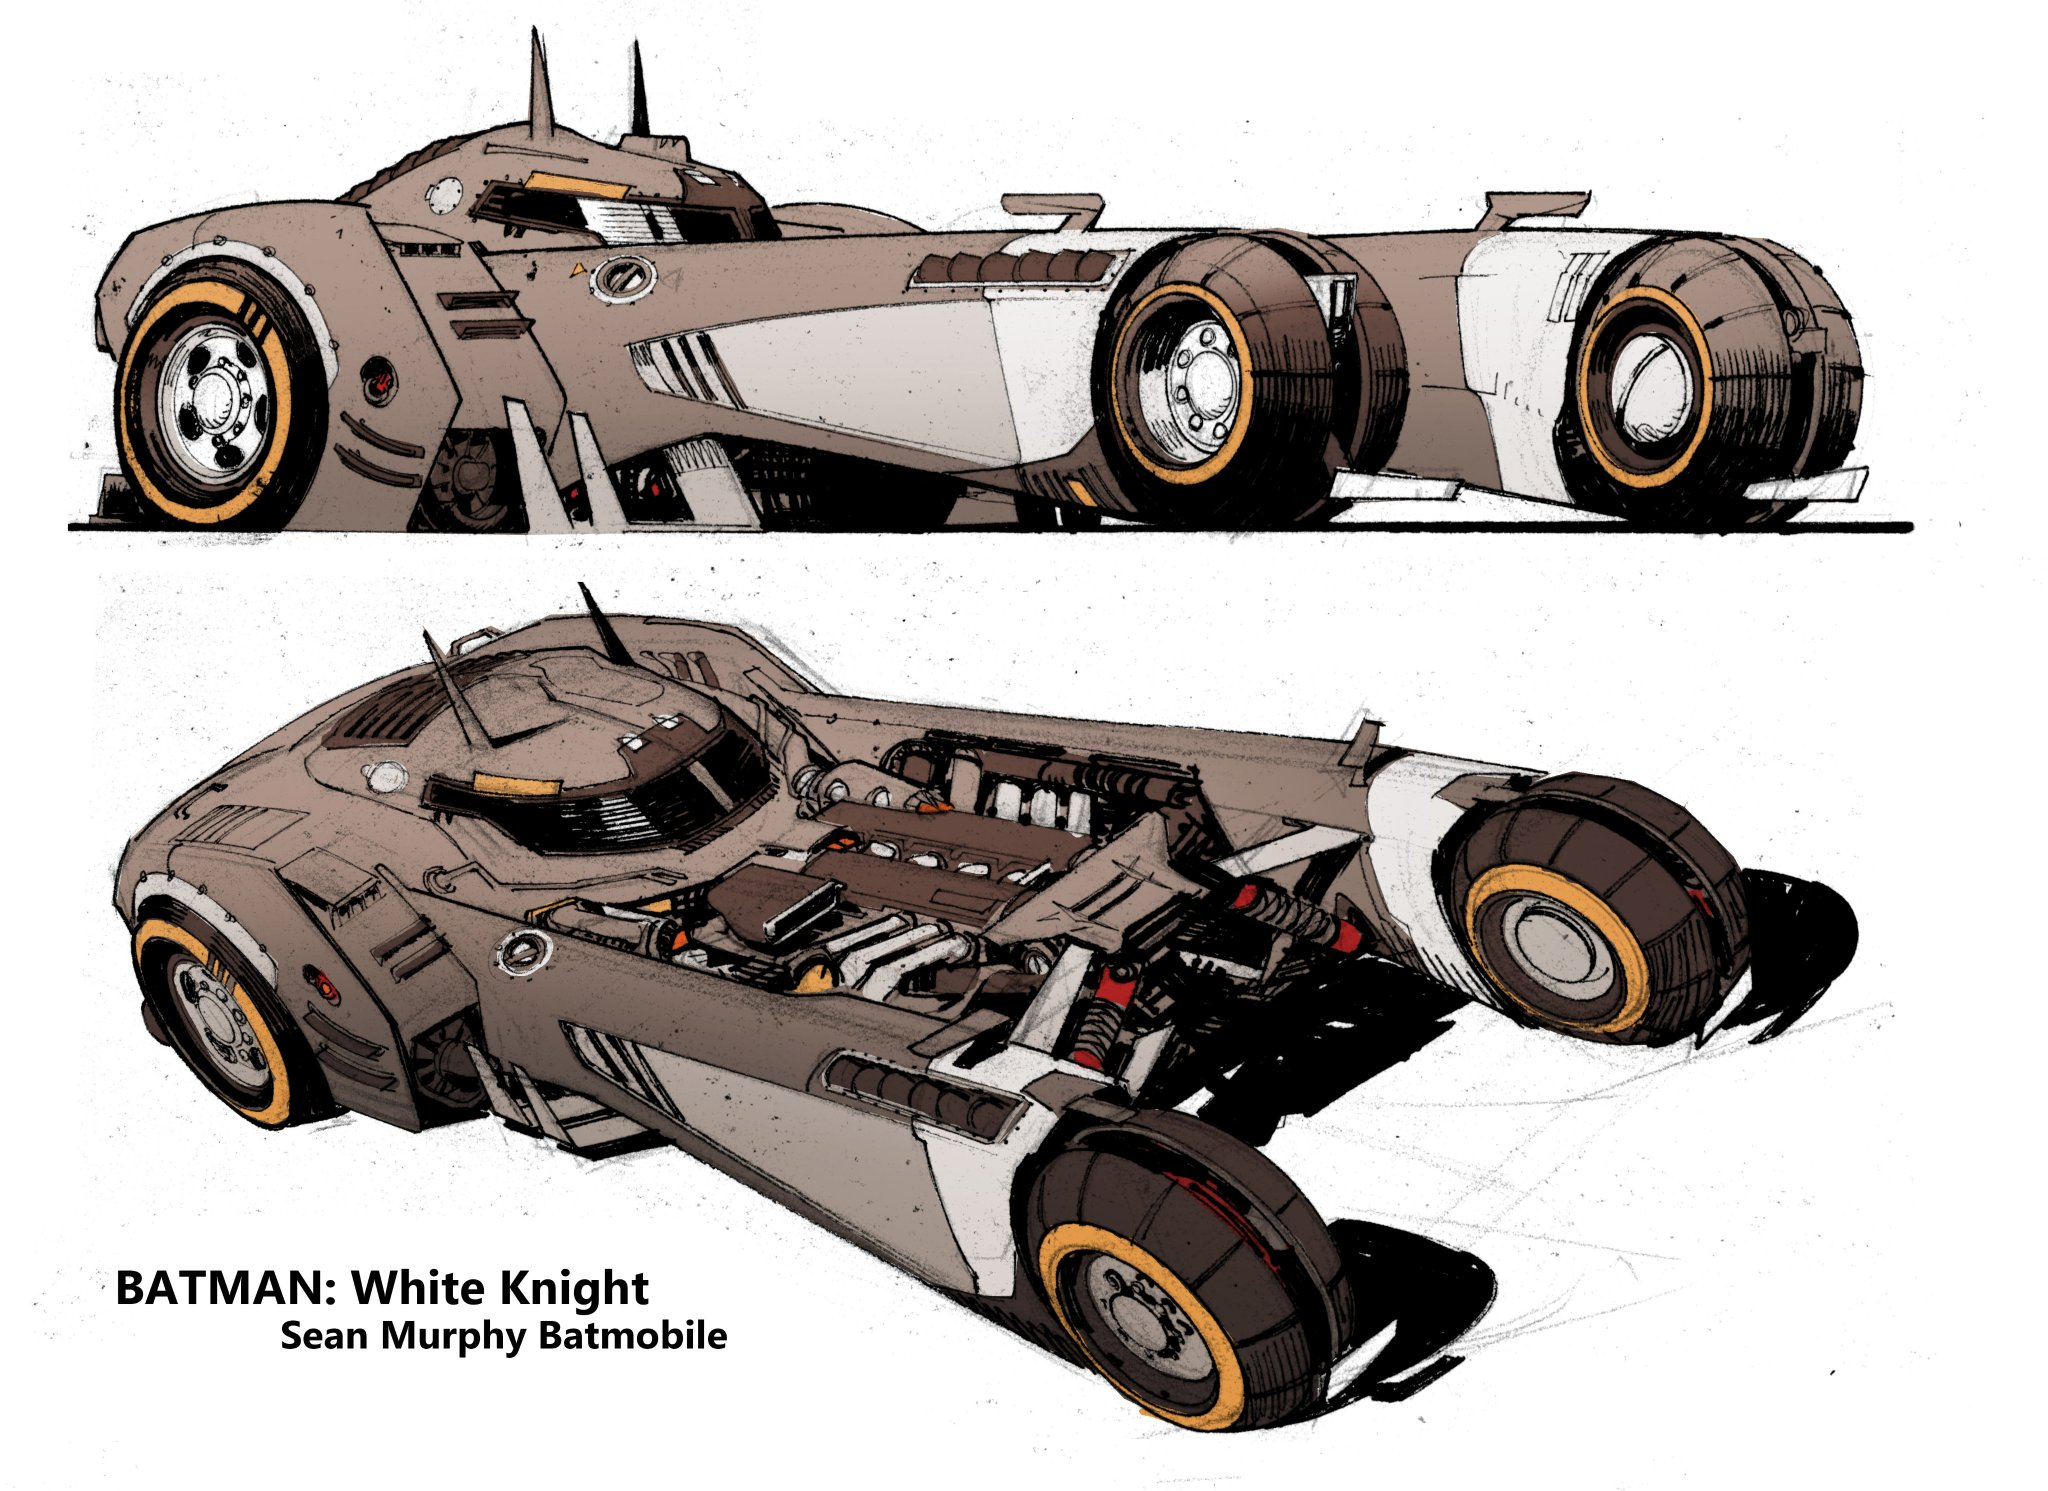 Batmobile white knight 03